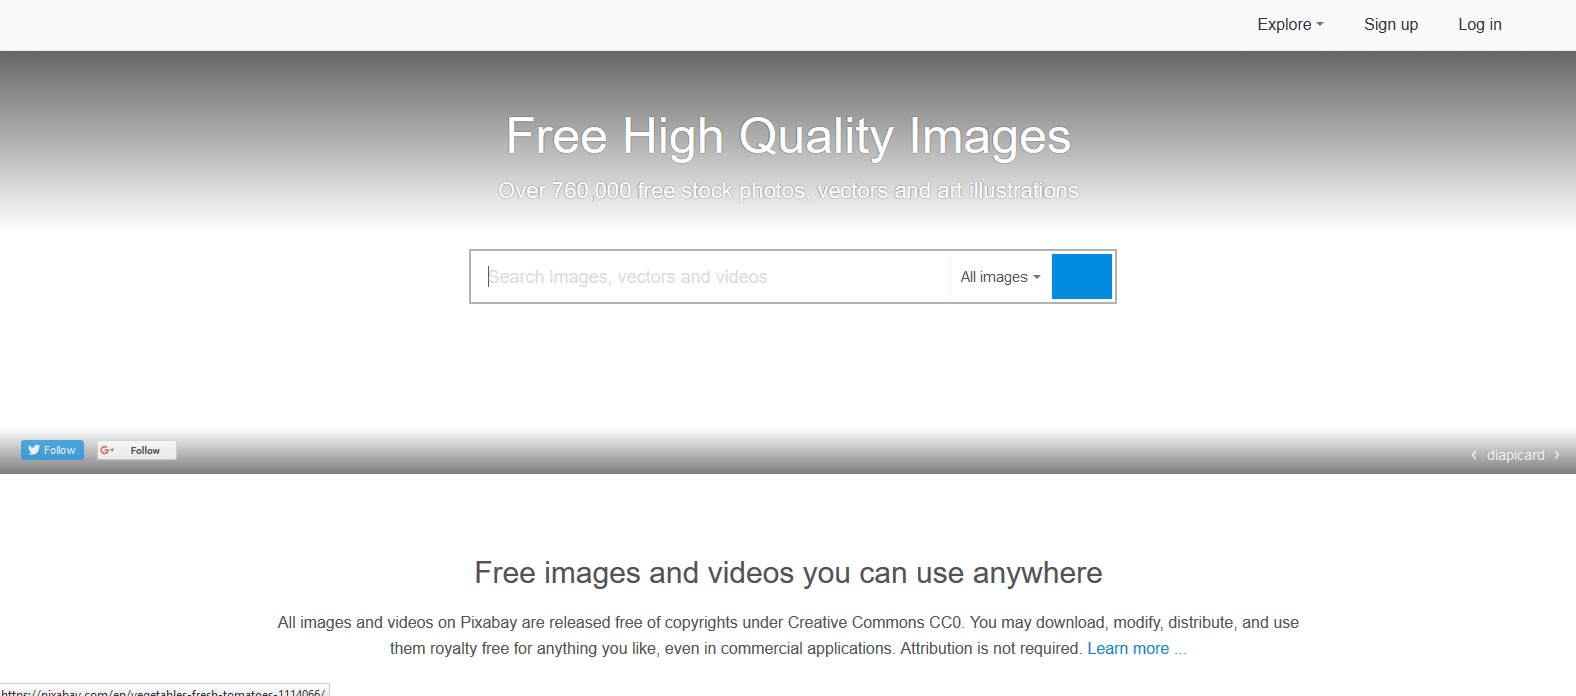 how-to-find-royalty-free-image-top-35-sites-for-unique-image-2